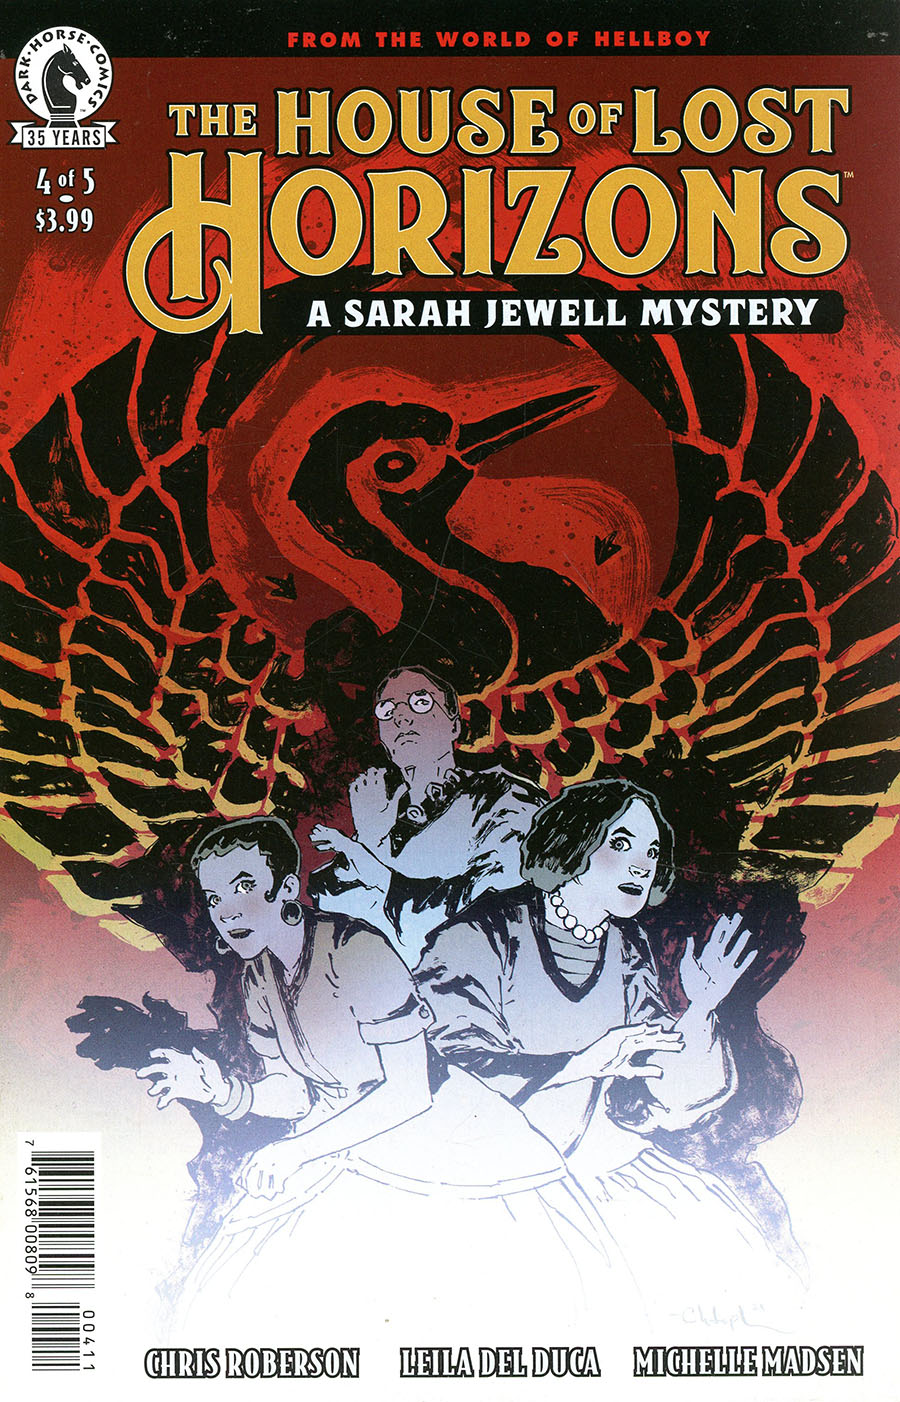 House Of Lost Horizons A Sarah Jewell Mystery #4